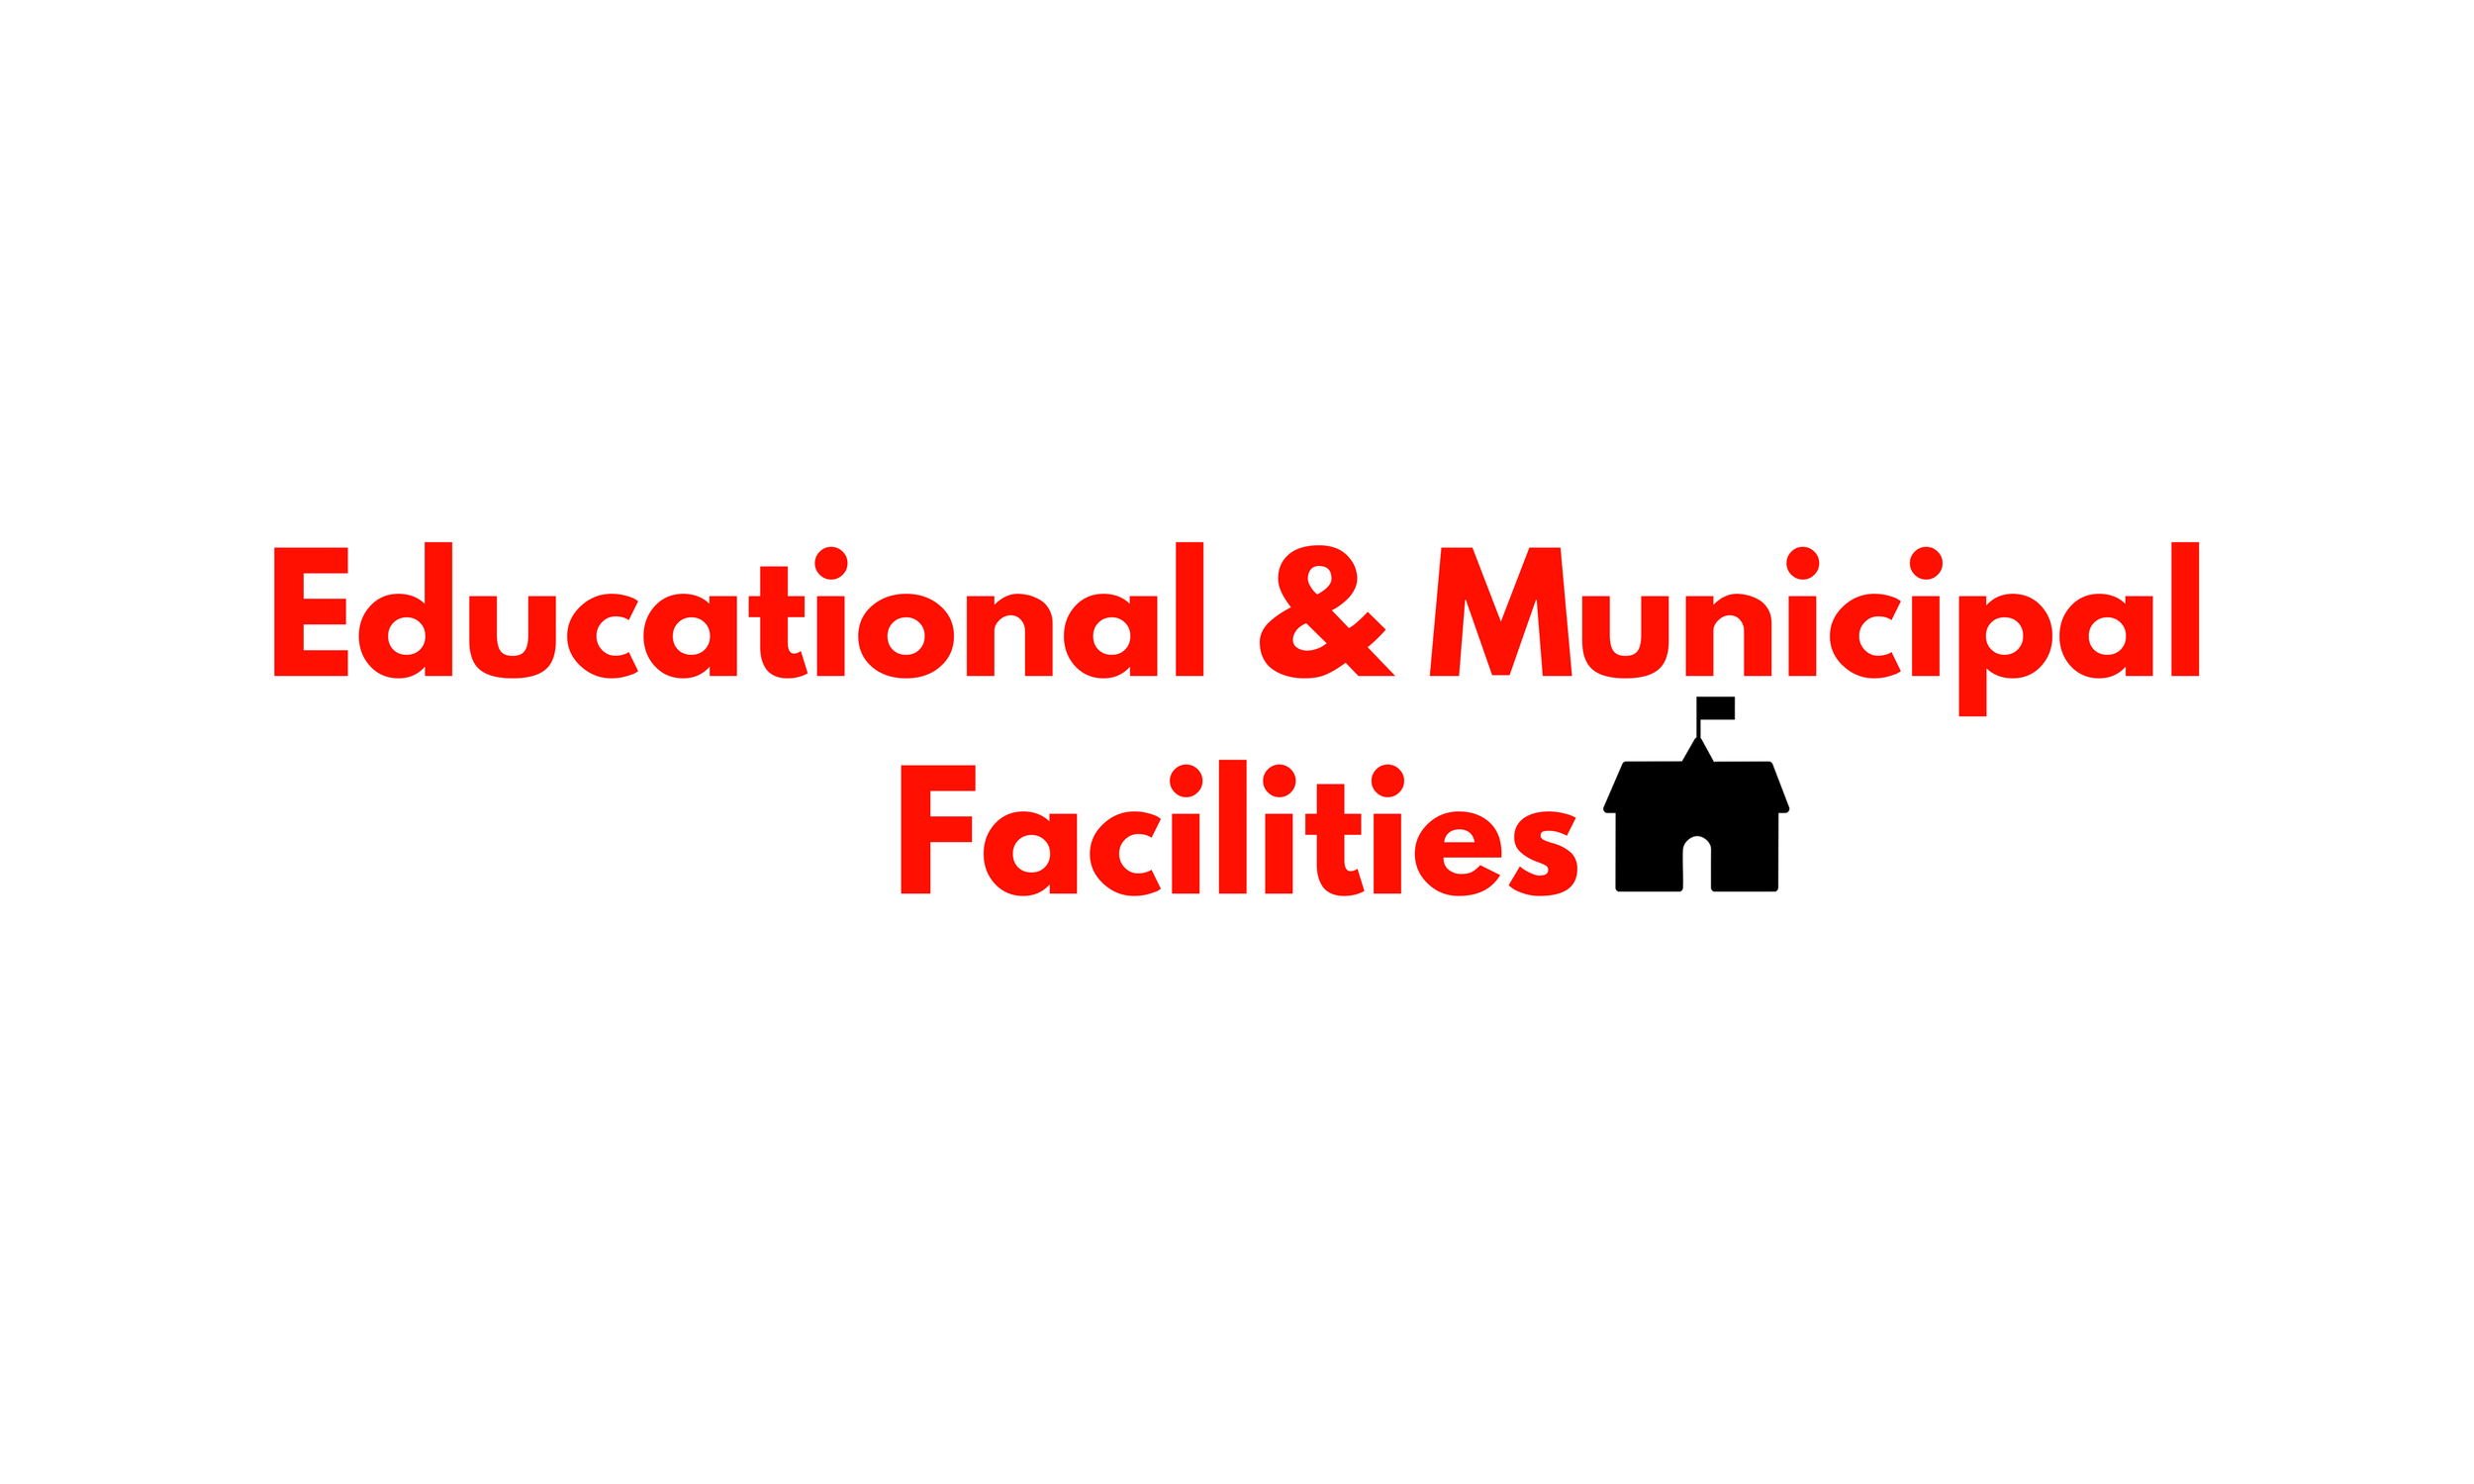 evans-construction-educational-municipal-facilities-general-contractors-virginia.png